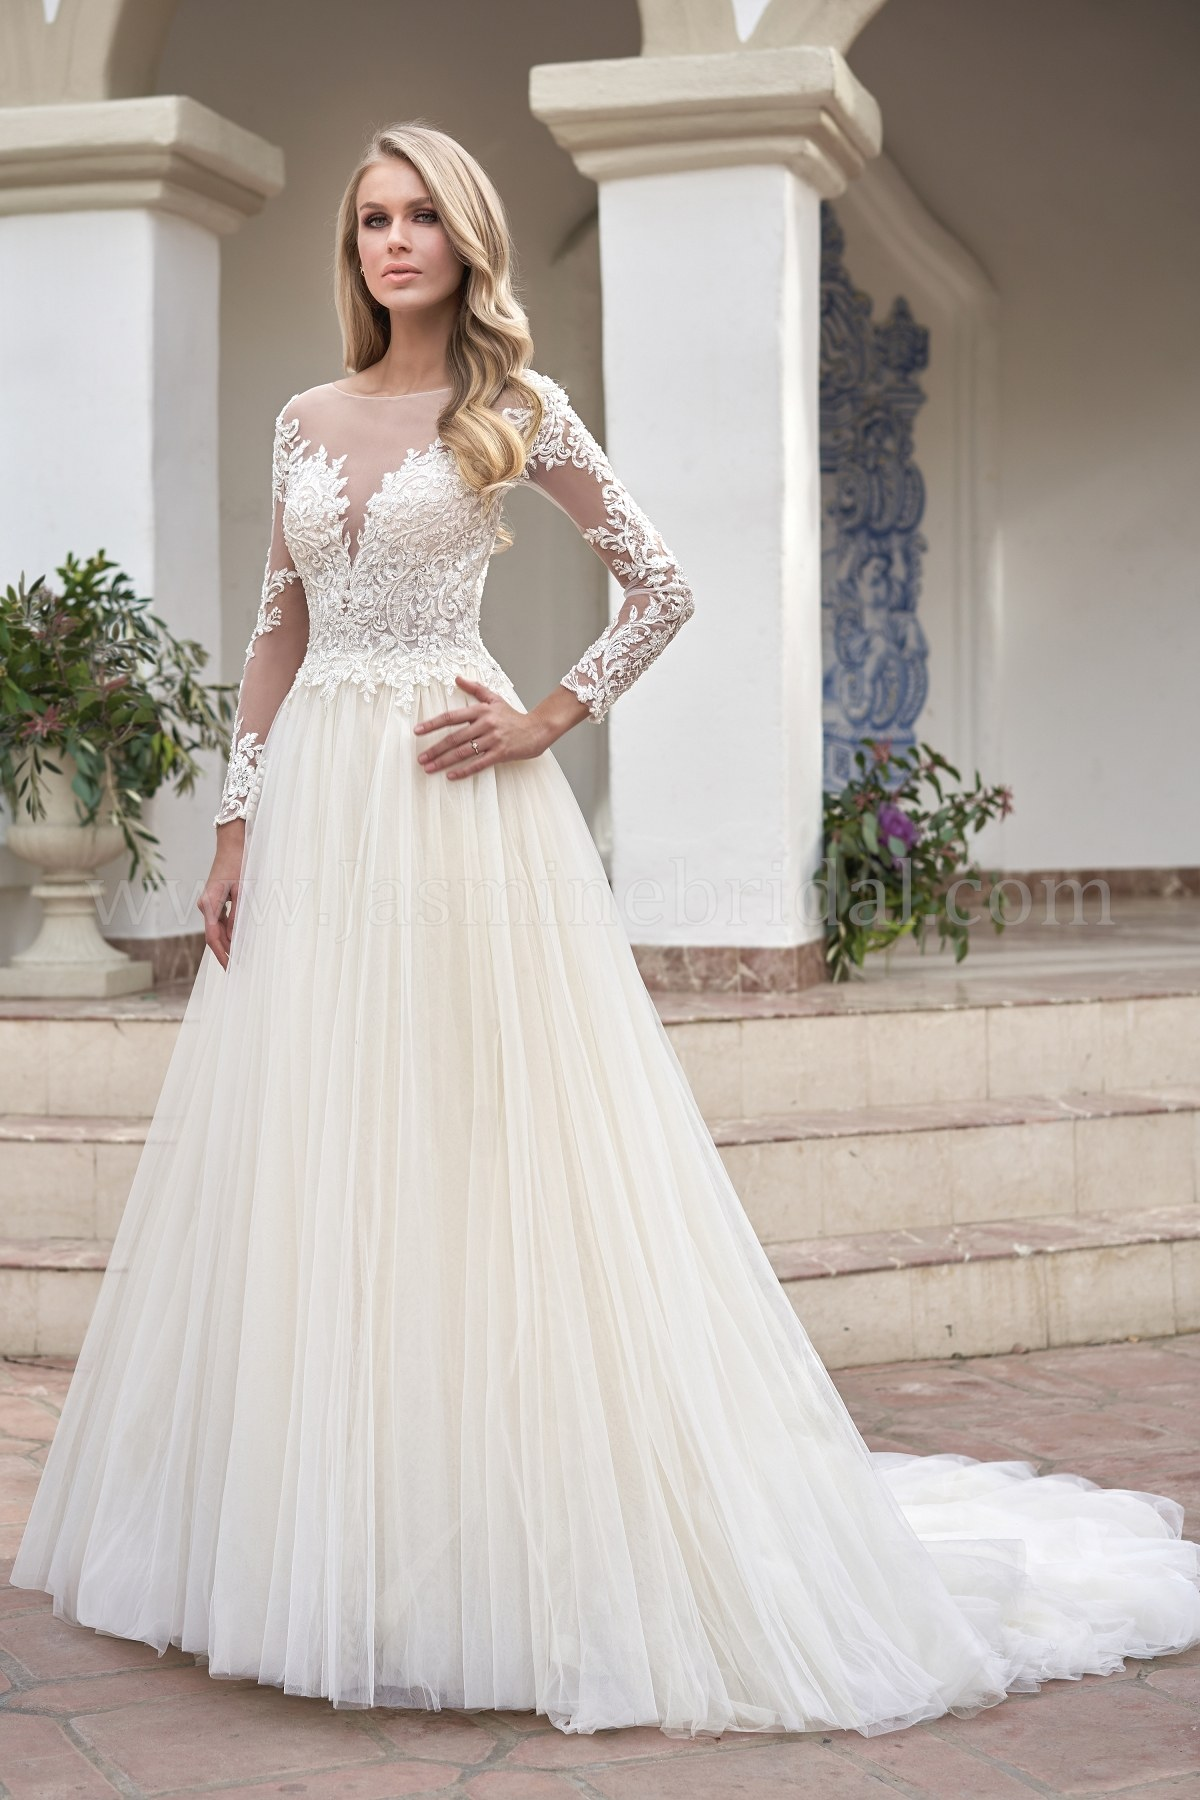 T202061 Illusion Bodice Neckline Embroidered Lace Tulle Wedding Dress